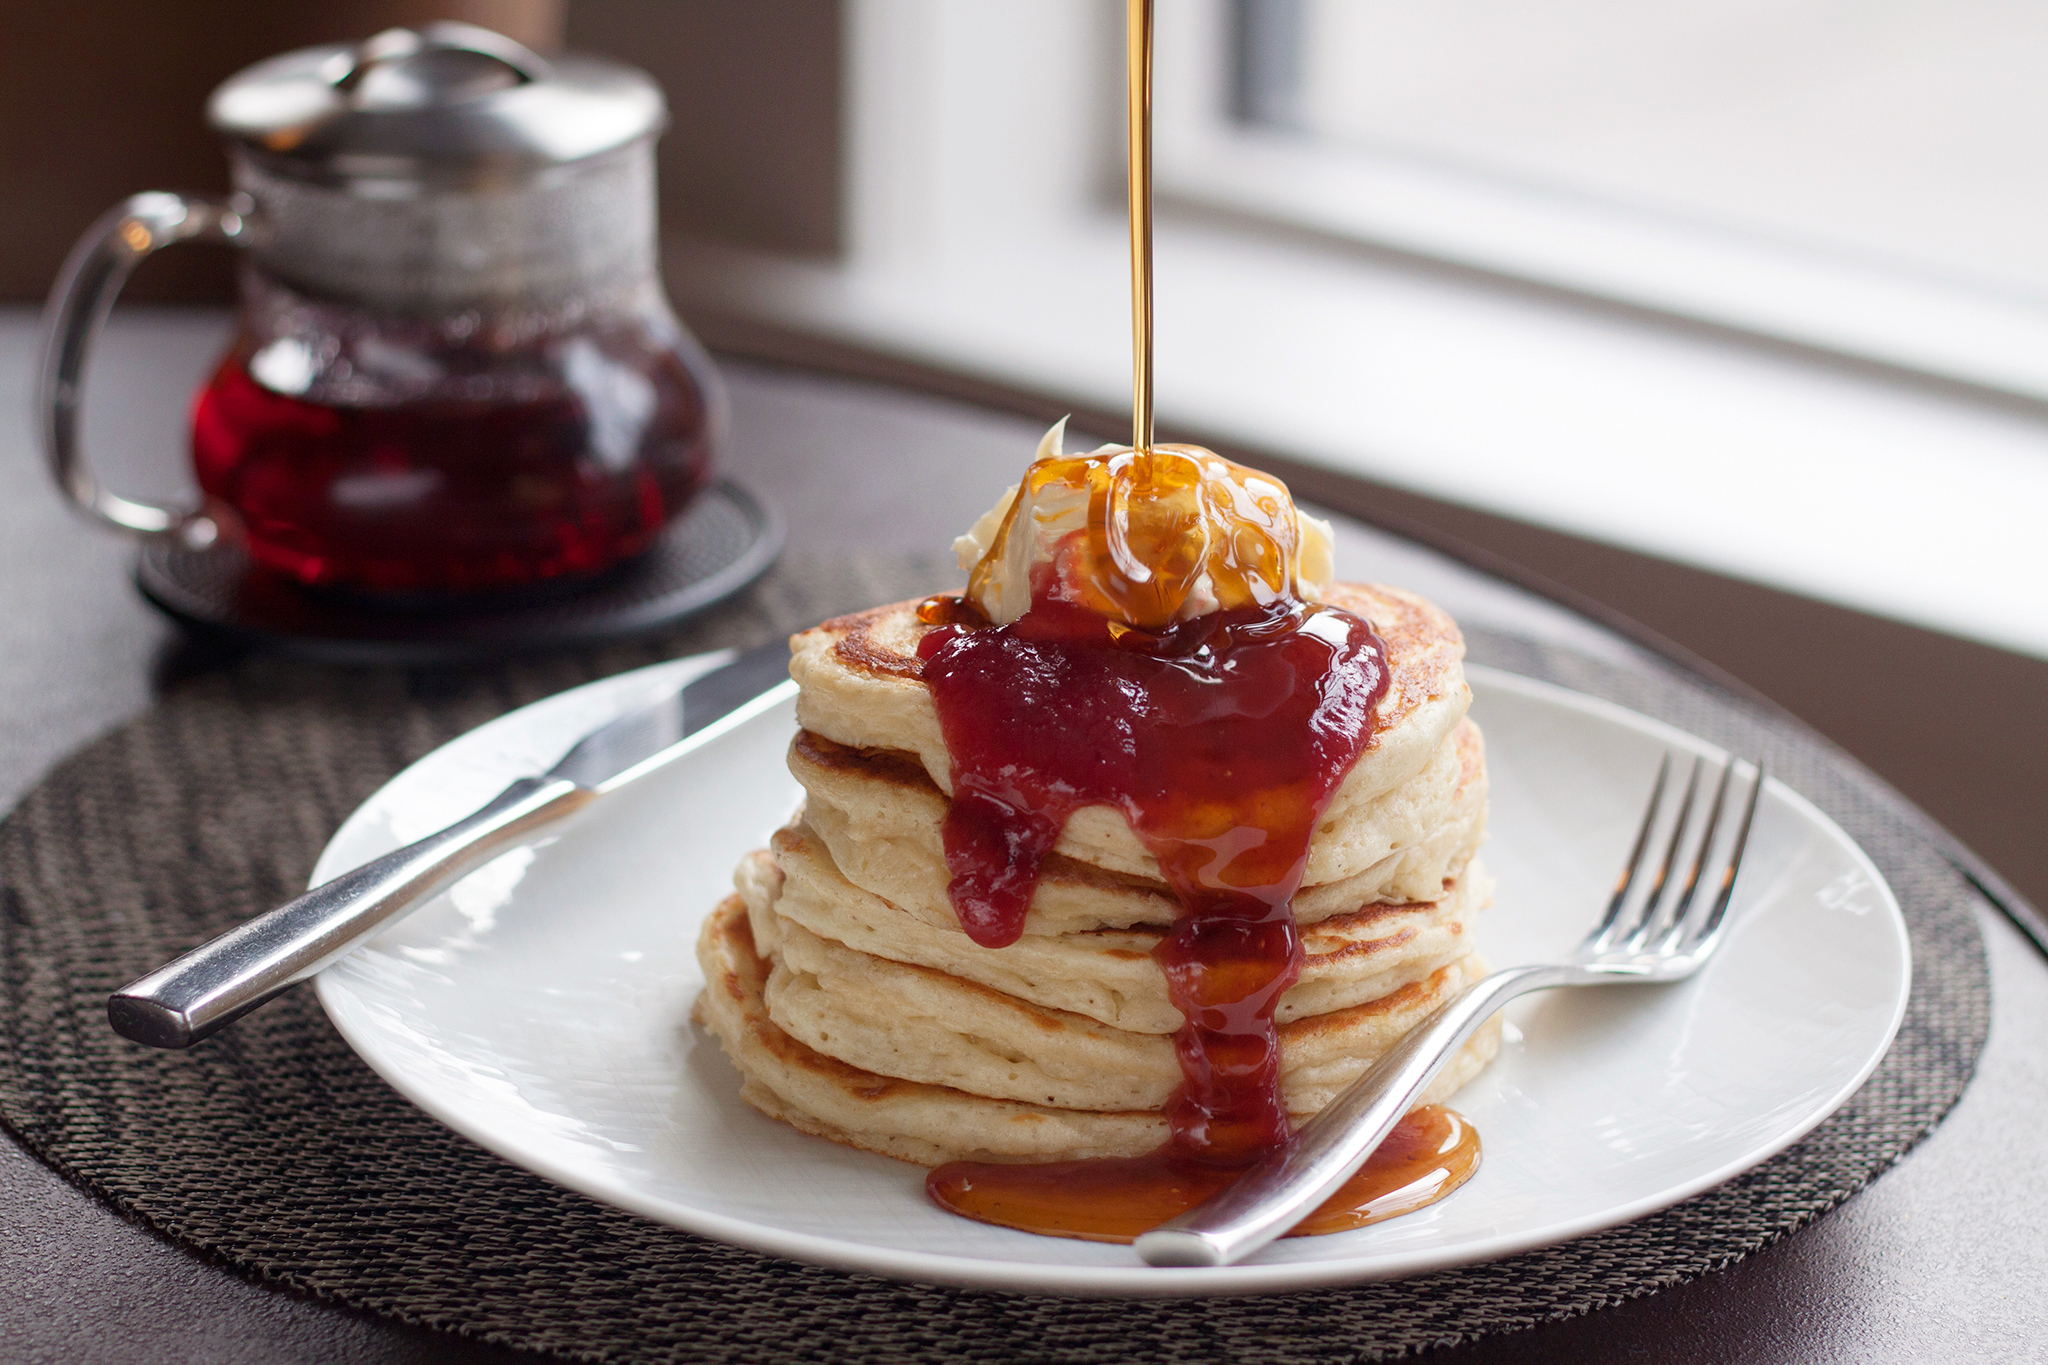 Check out the 15 best pancakes in America